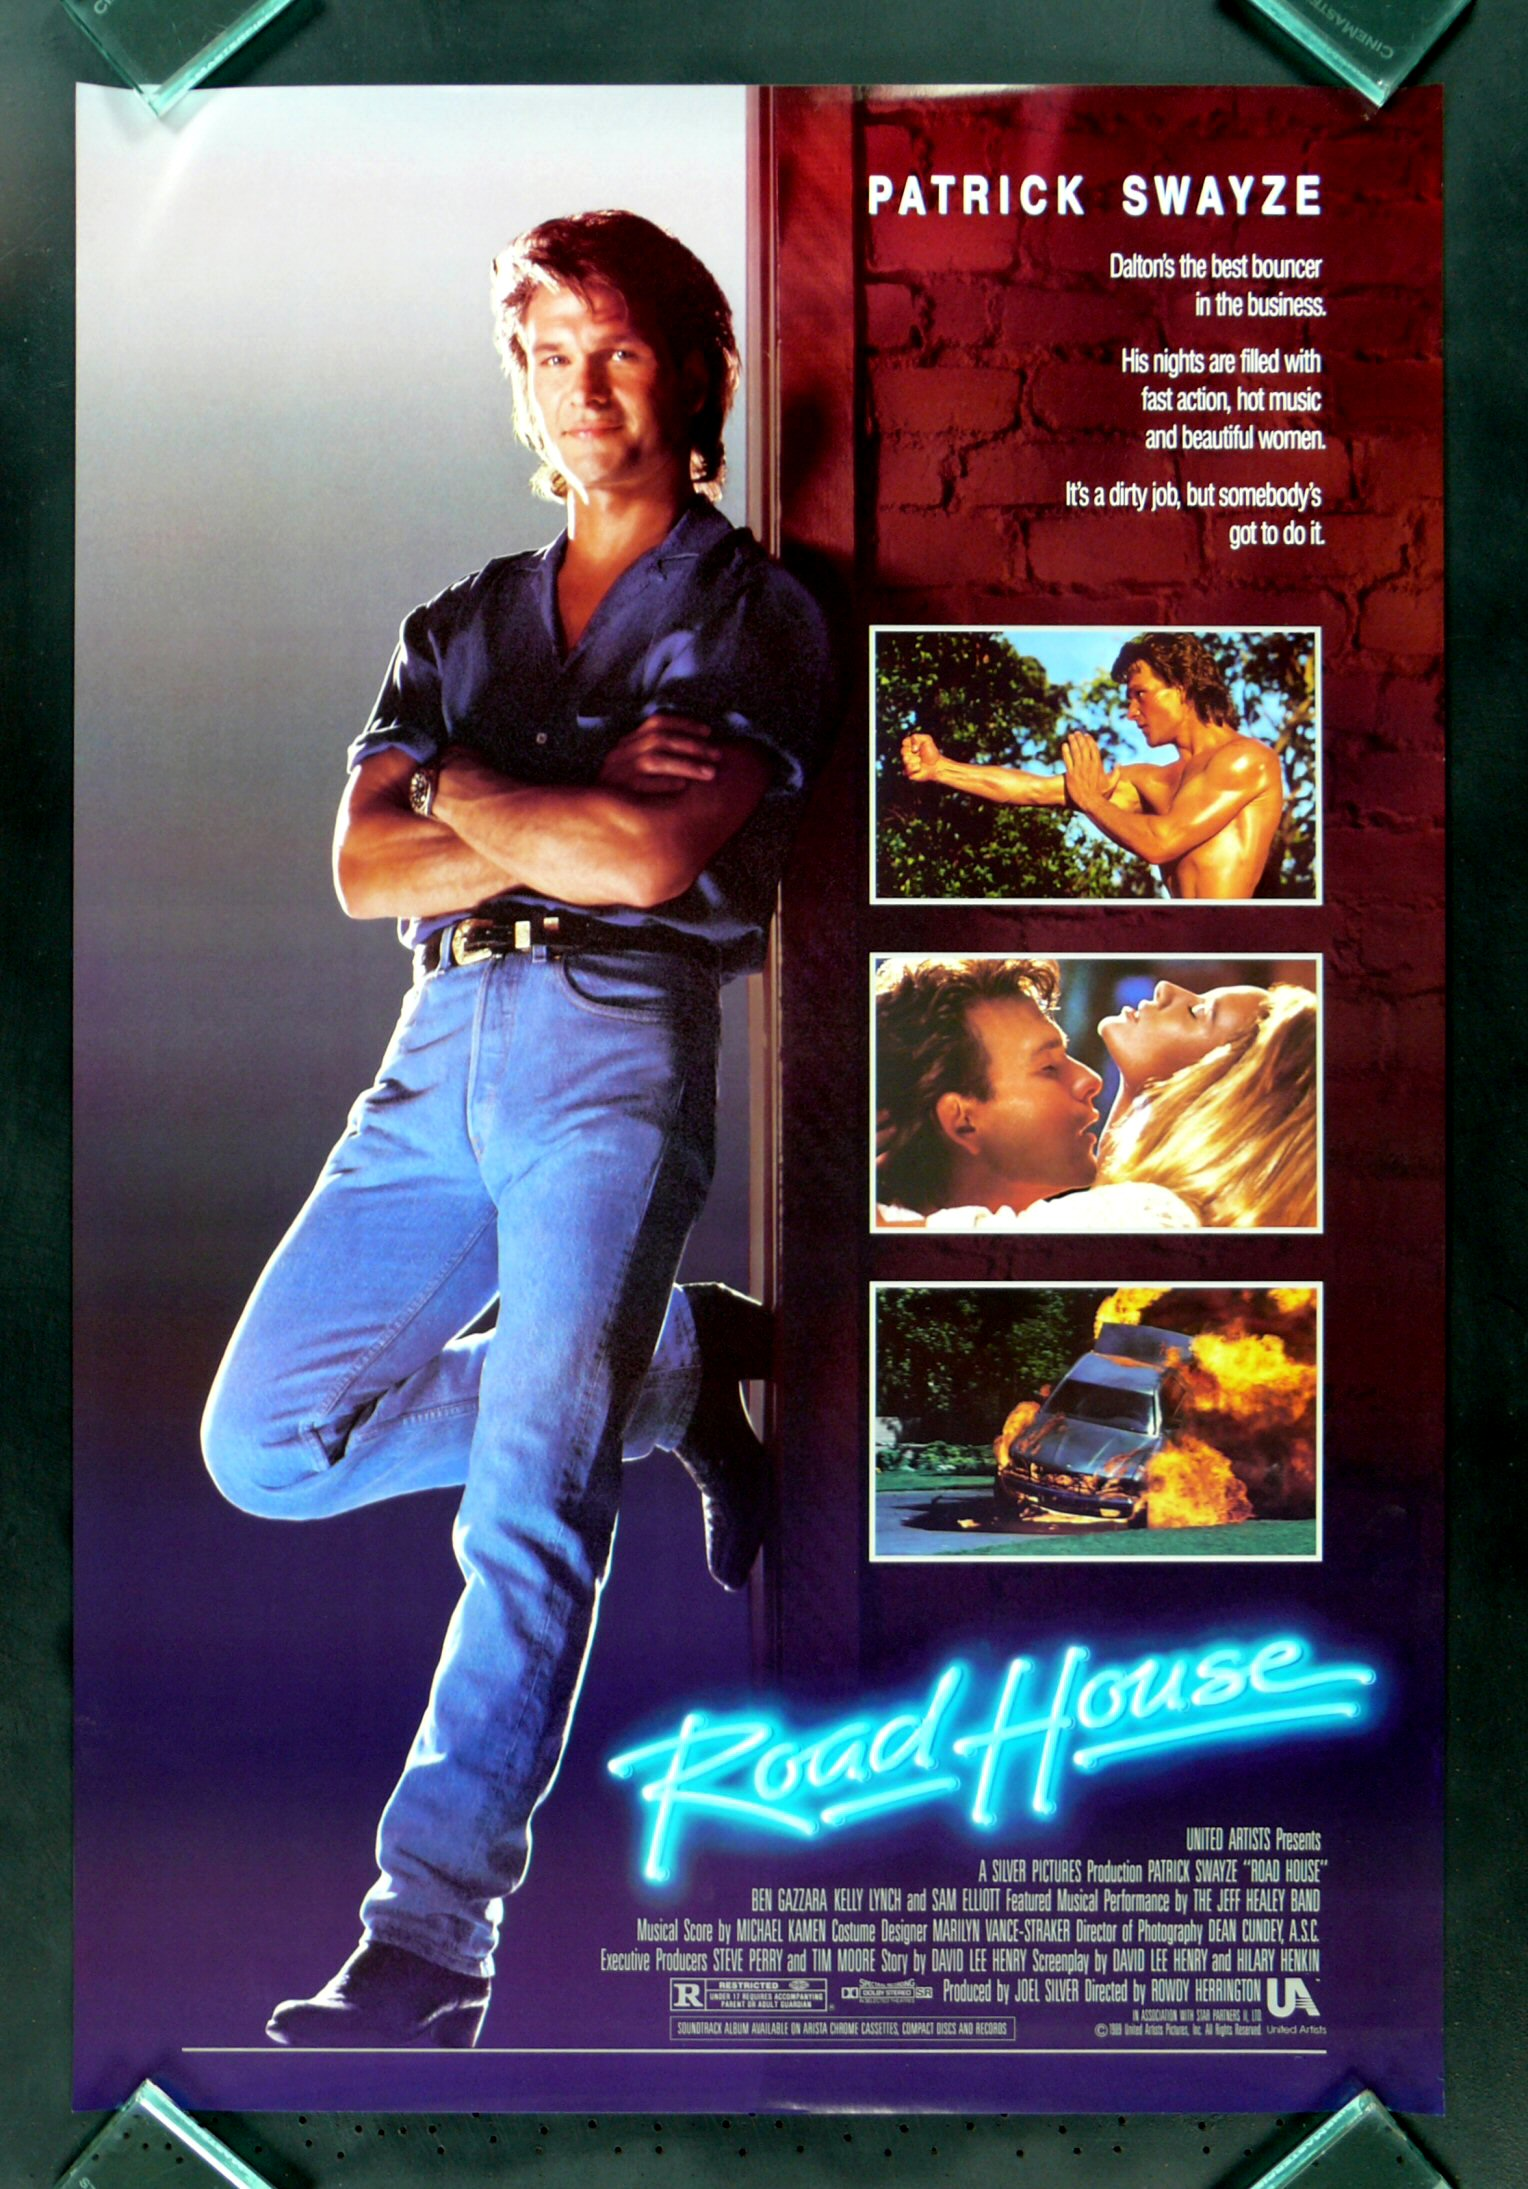 Awesome Road House